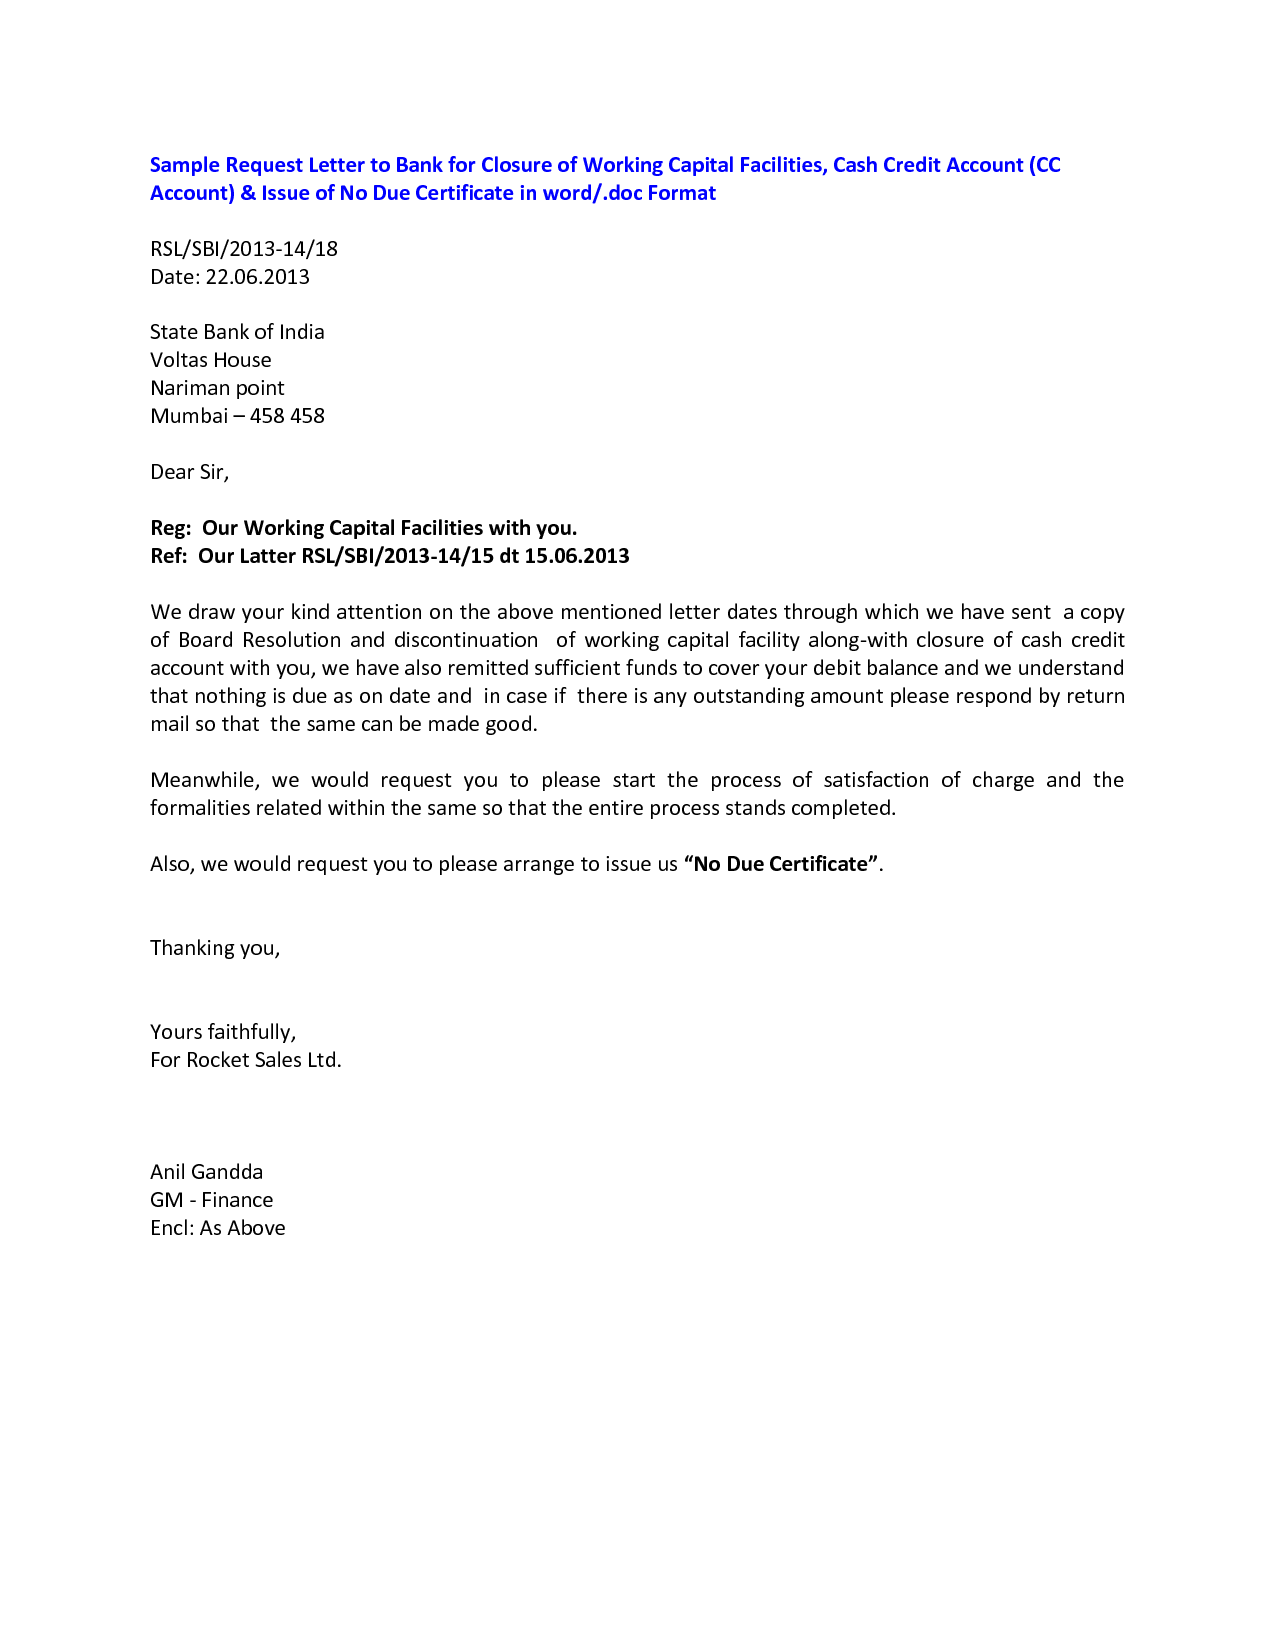 Valid Job Letter Template For Bank You Can Download For Full Letter Resume Template Here Http Newspb Org Job Lett Accounting Word Template Letter Templates